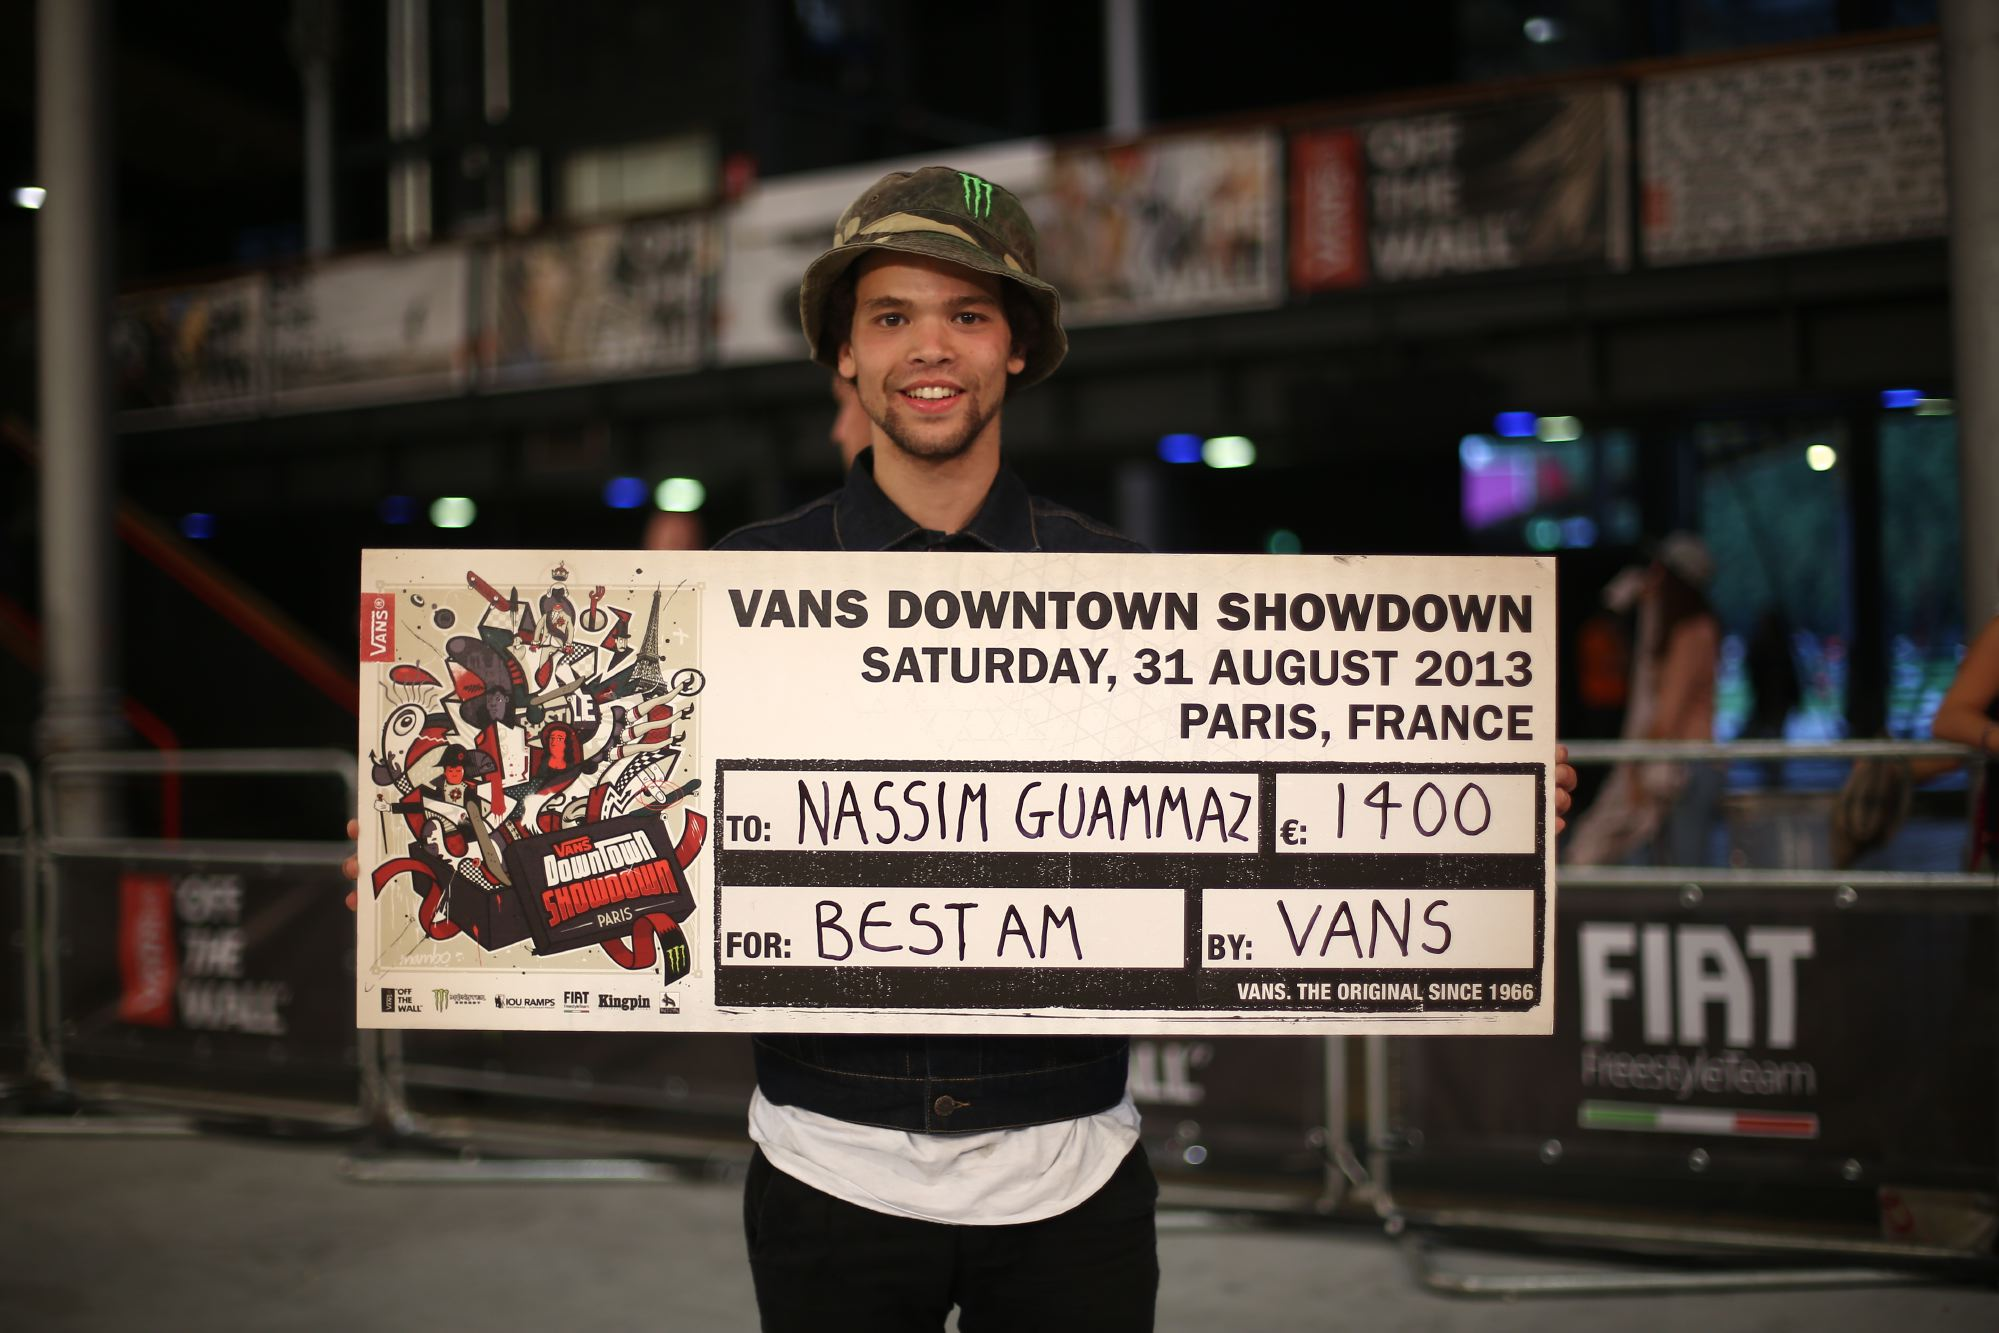 Vans Downtown Showdown 2013